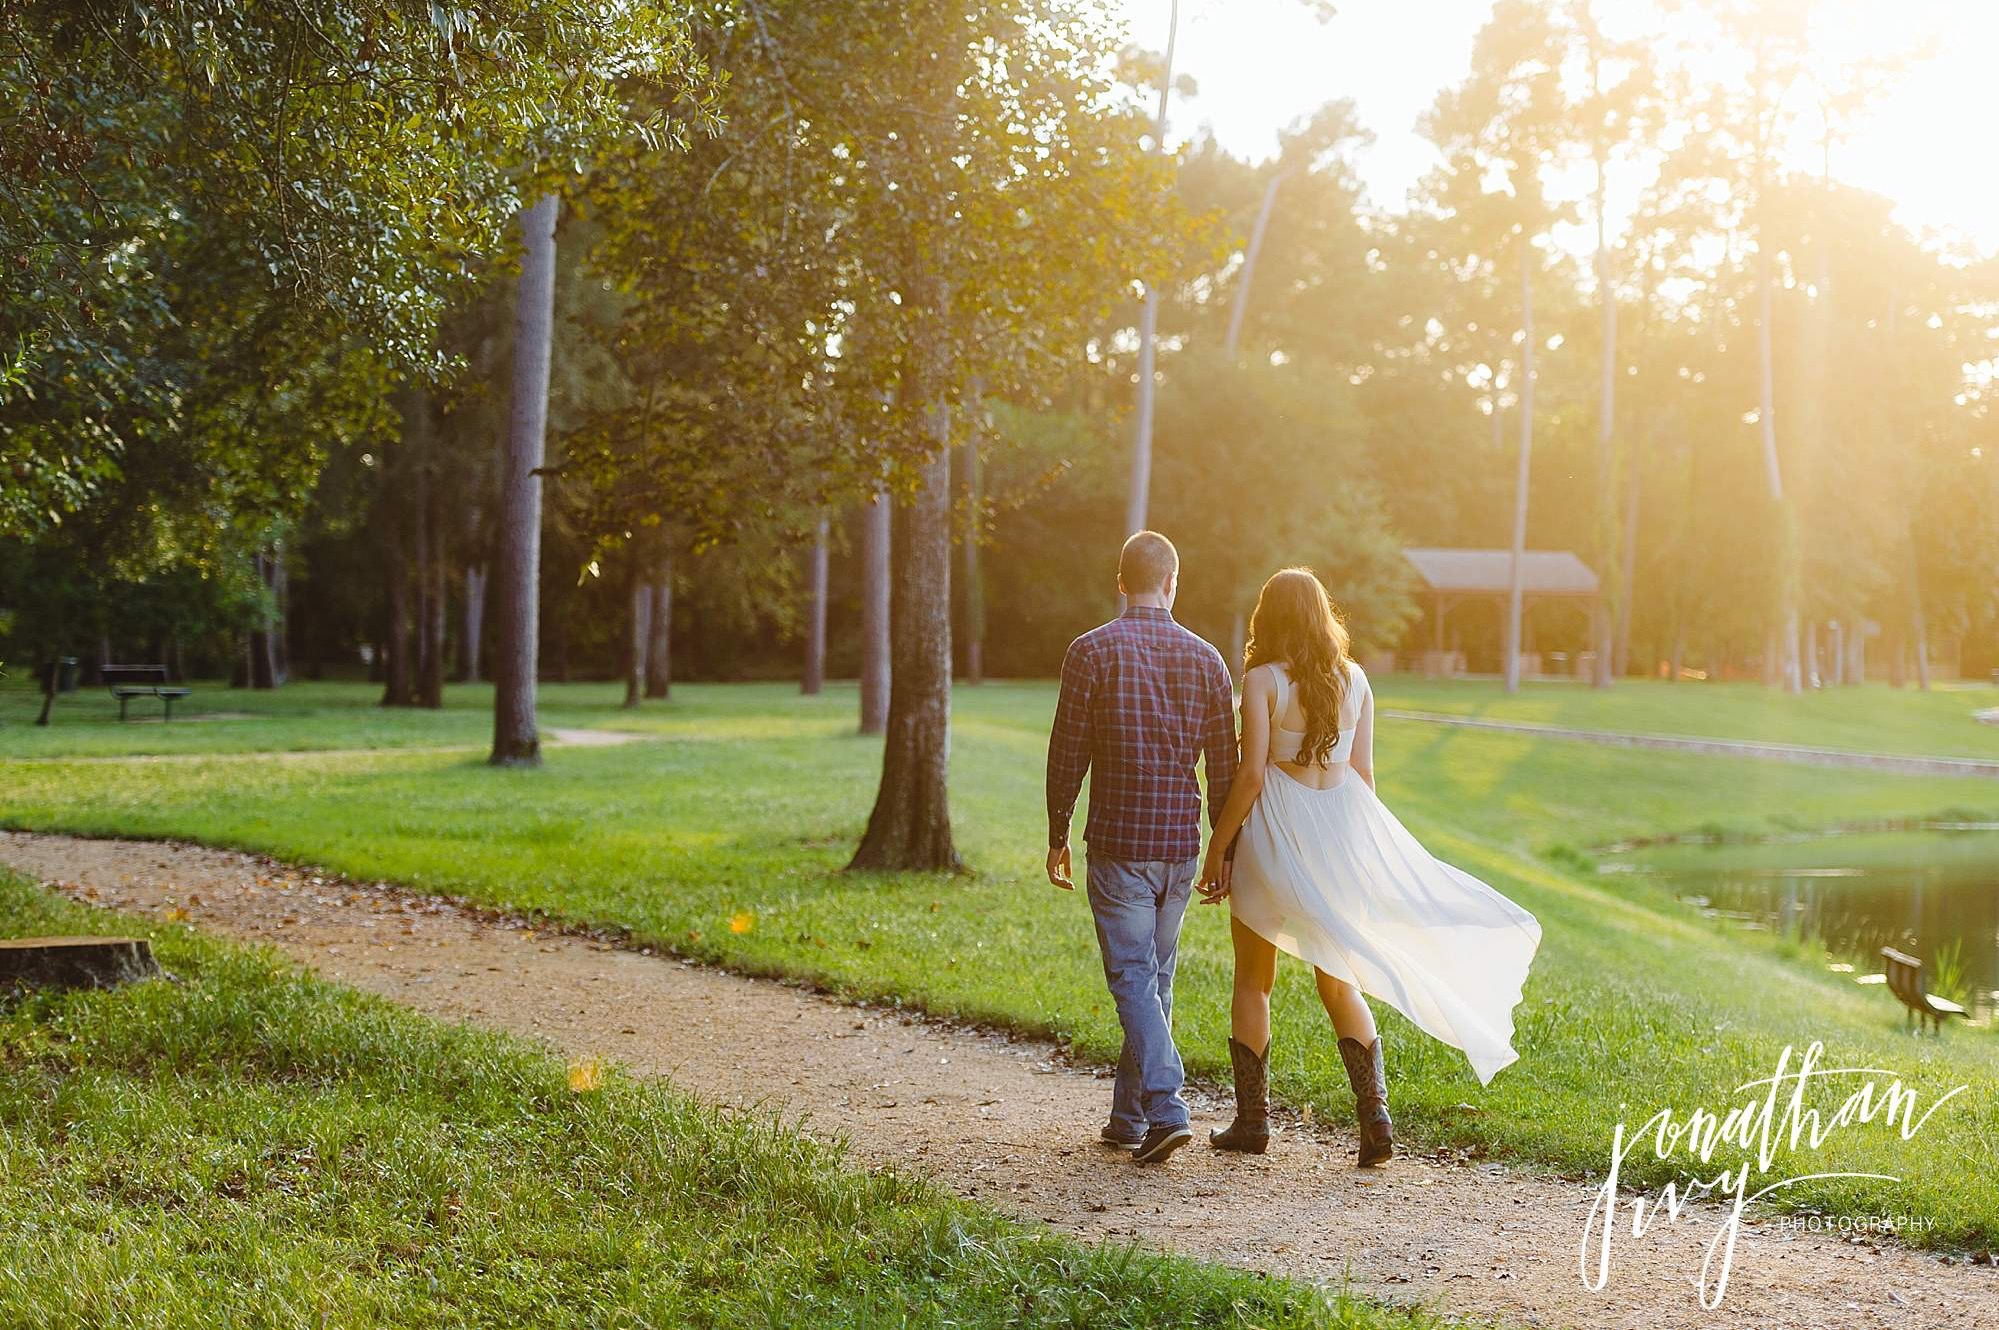 The Woodlands Engagement locations